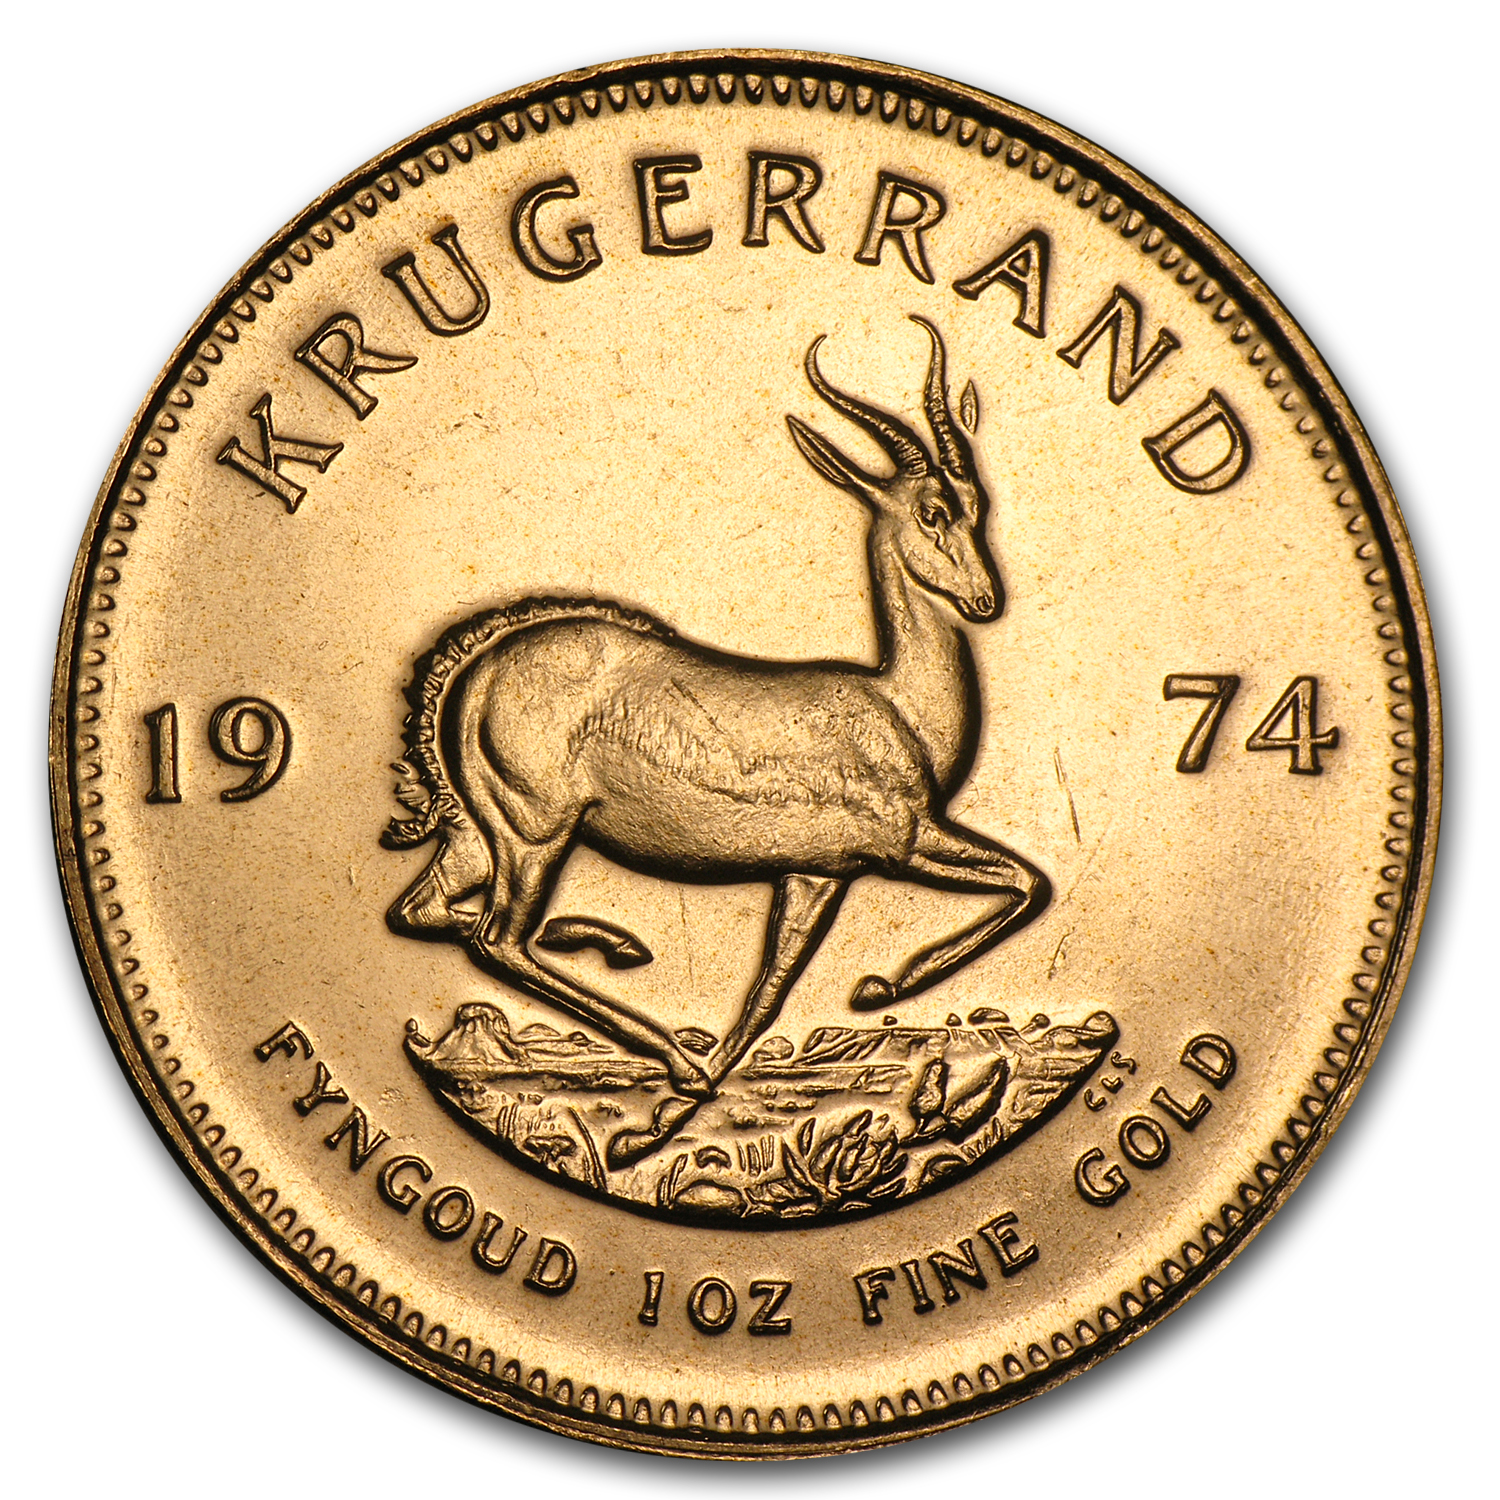 1974 South Africa 1 oz Gold Krugerrand